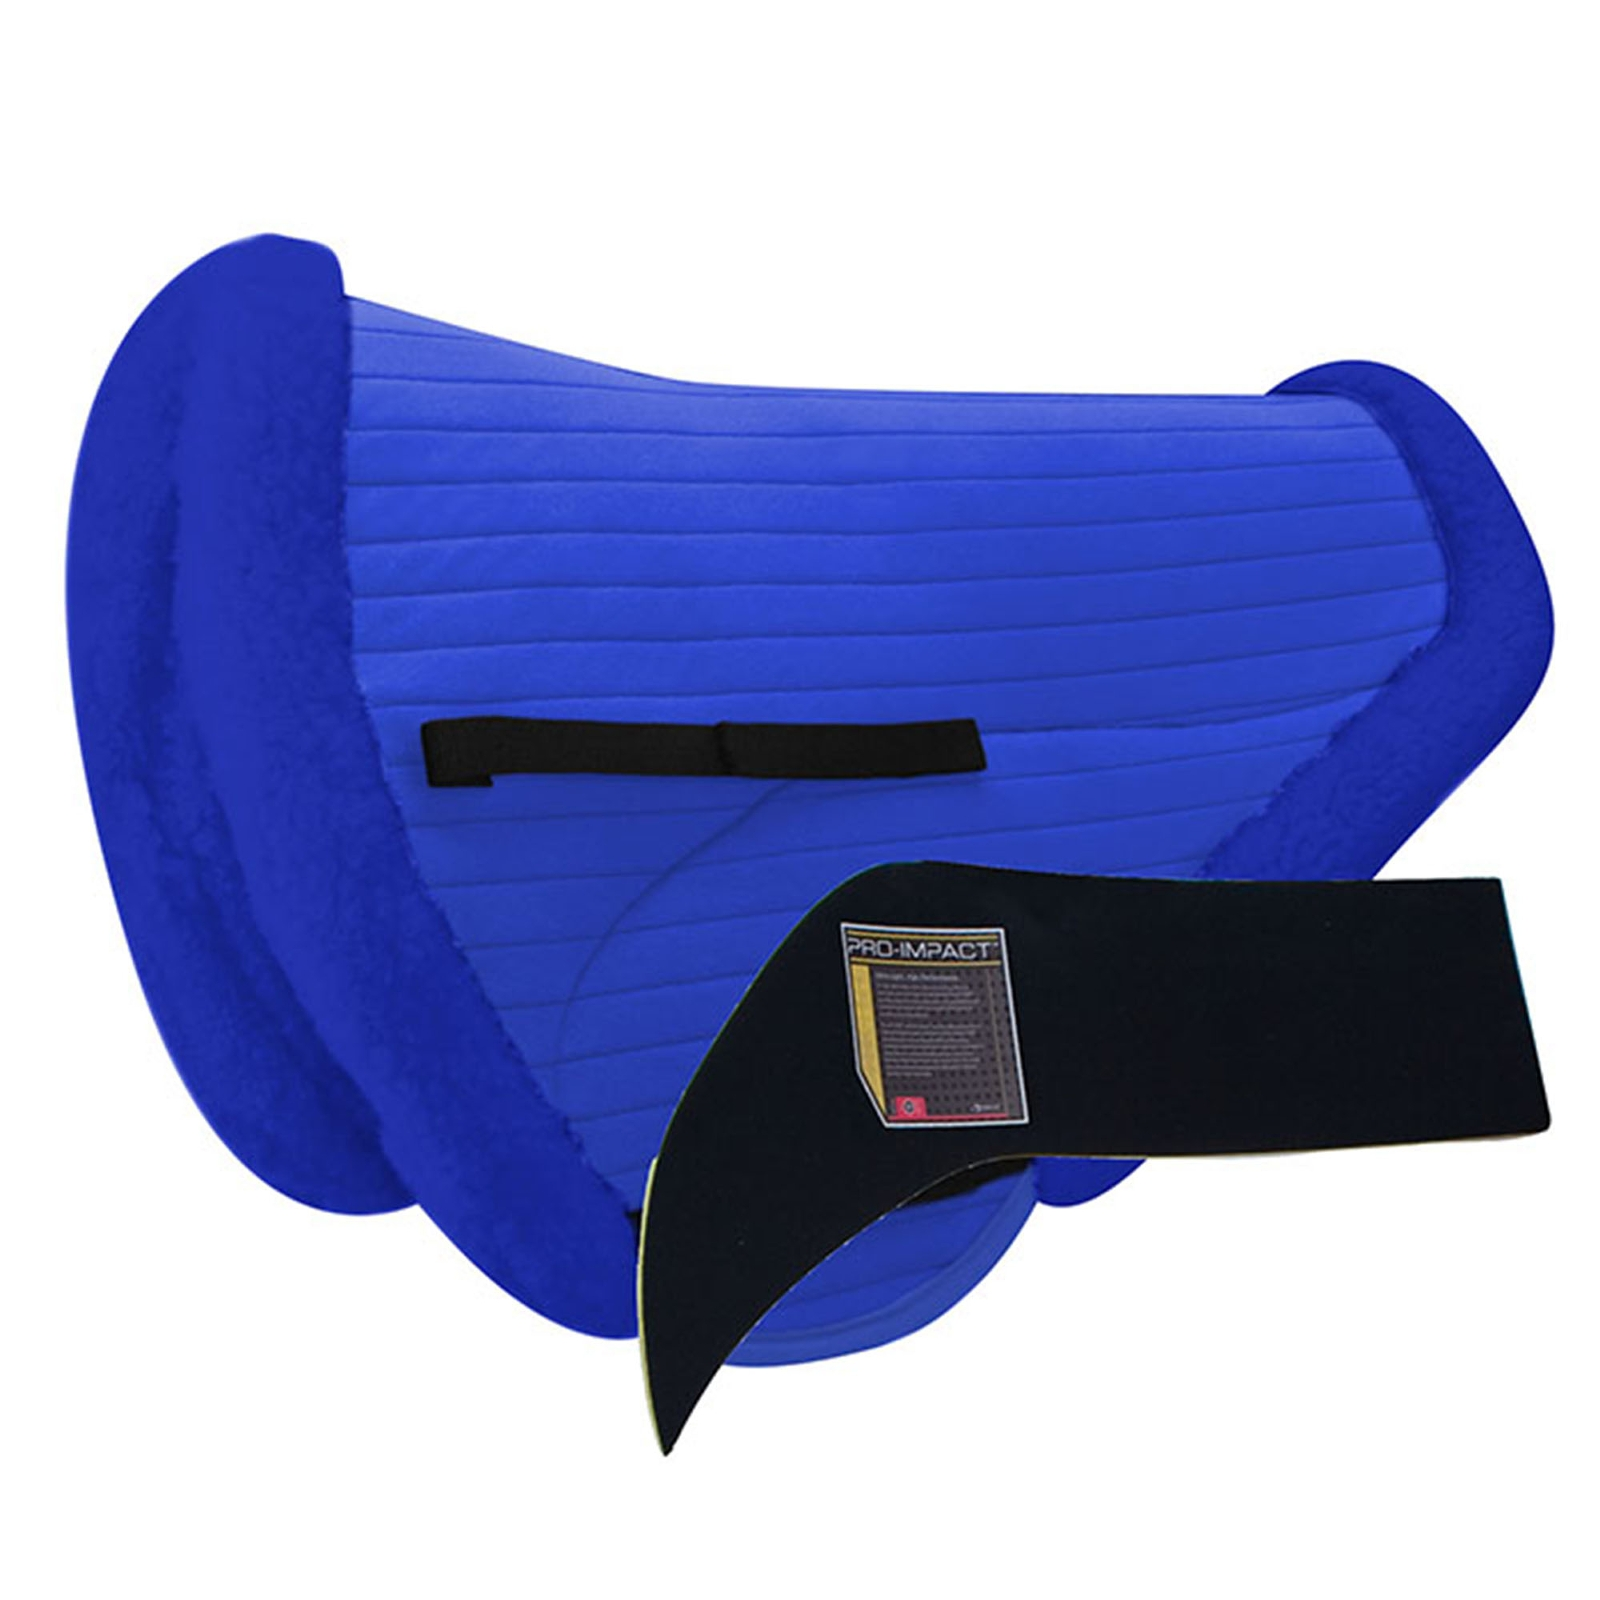 Matrix T3 CoolBack Sport Endurance Pad